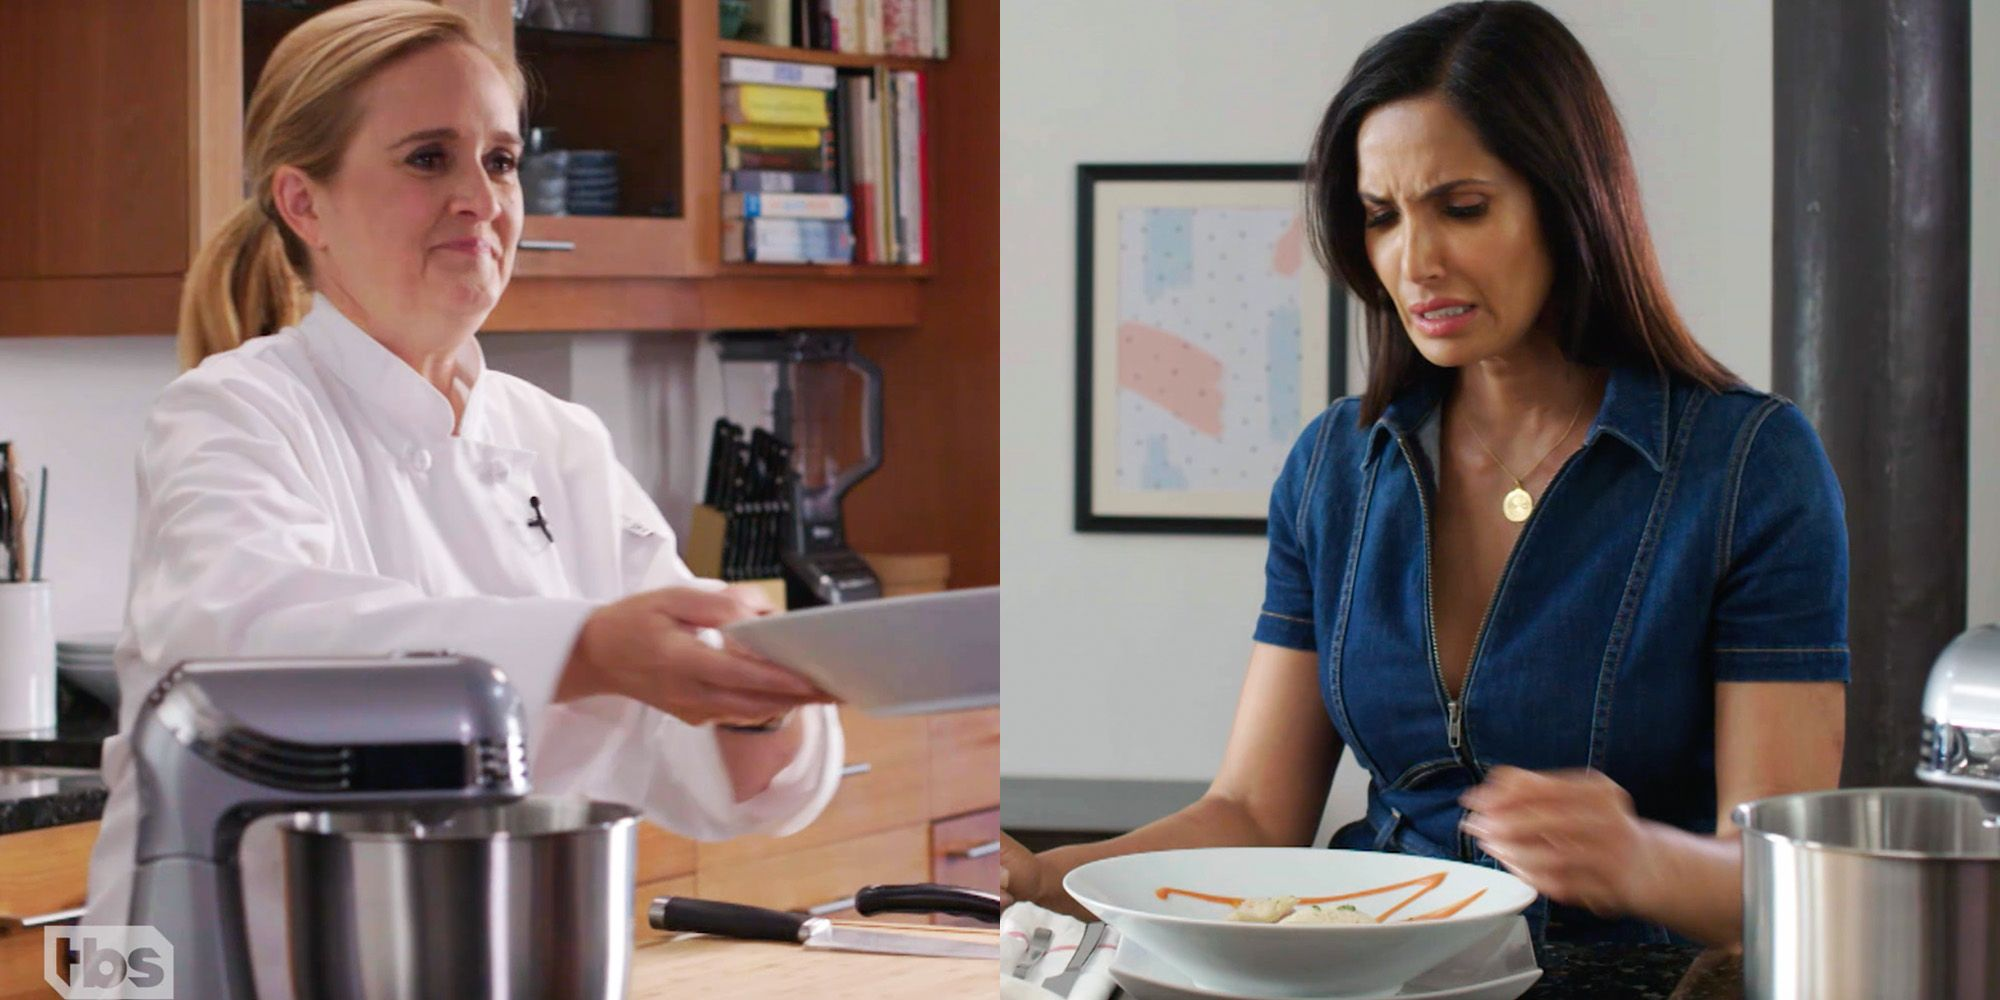 elle.com - Madison Feller - Exclusive: Samantha Bee and Padma Lakshmi Discuss Immigrants in the Food Industry in 'Top Chef' Parody